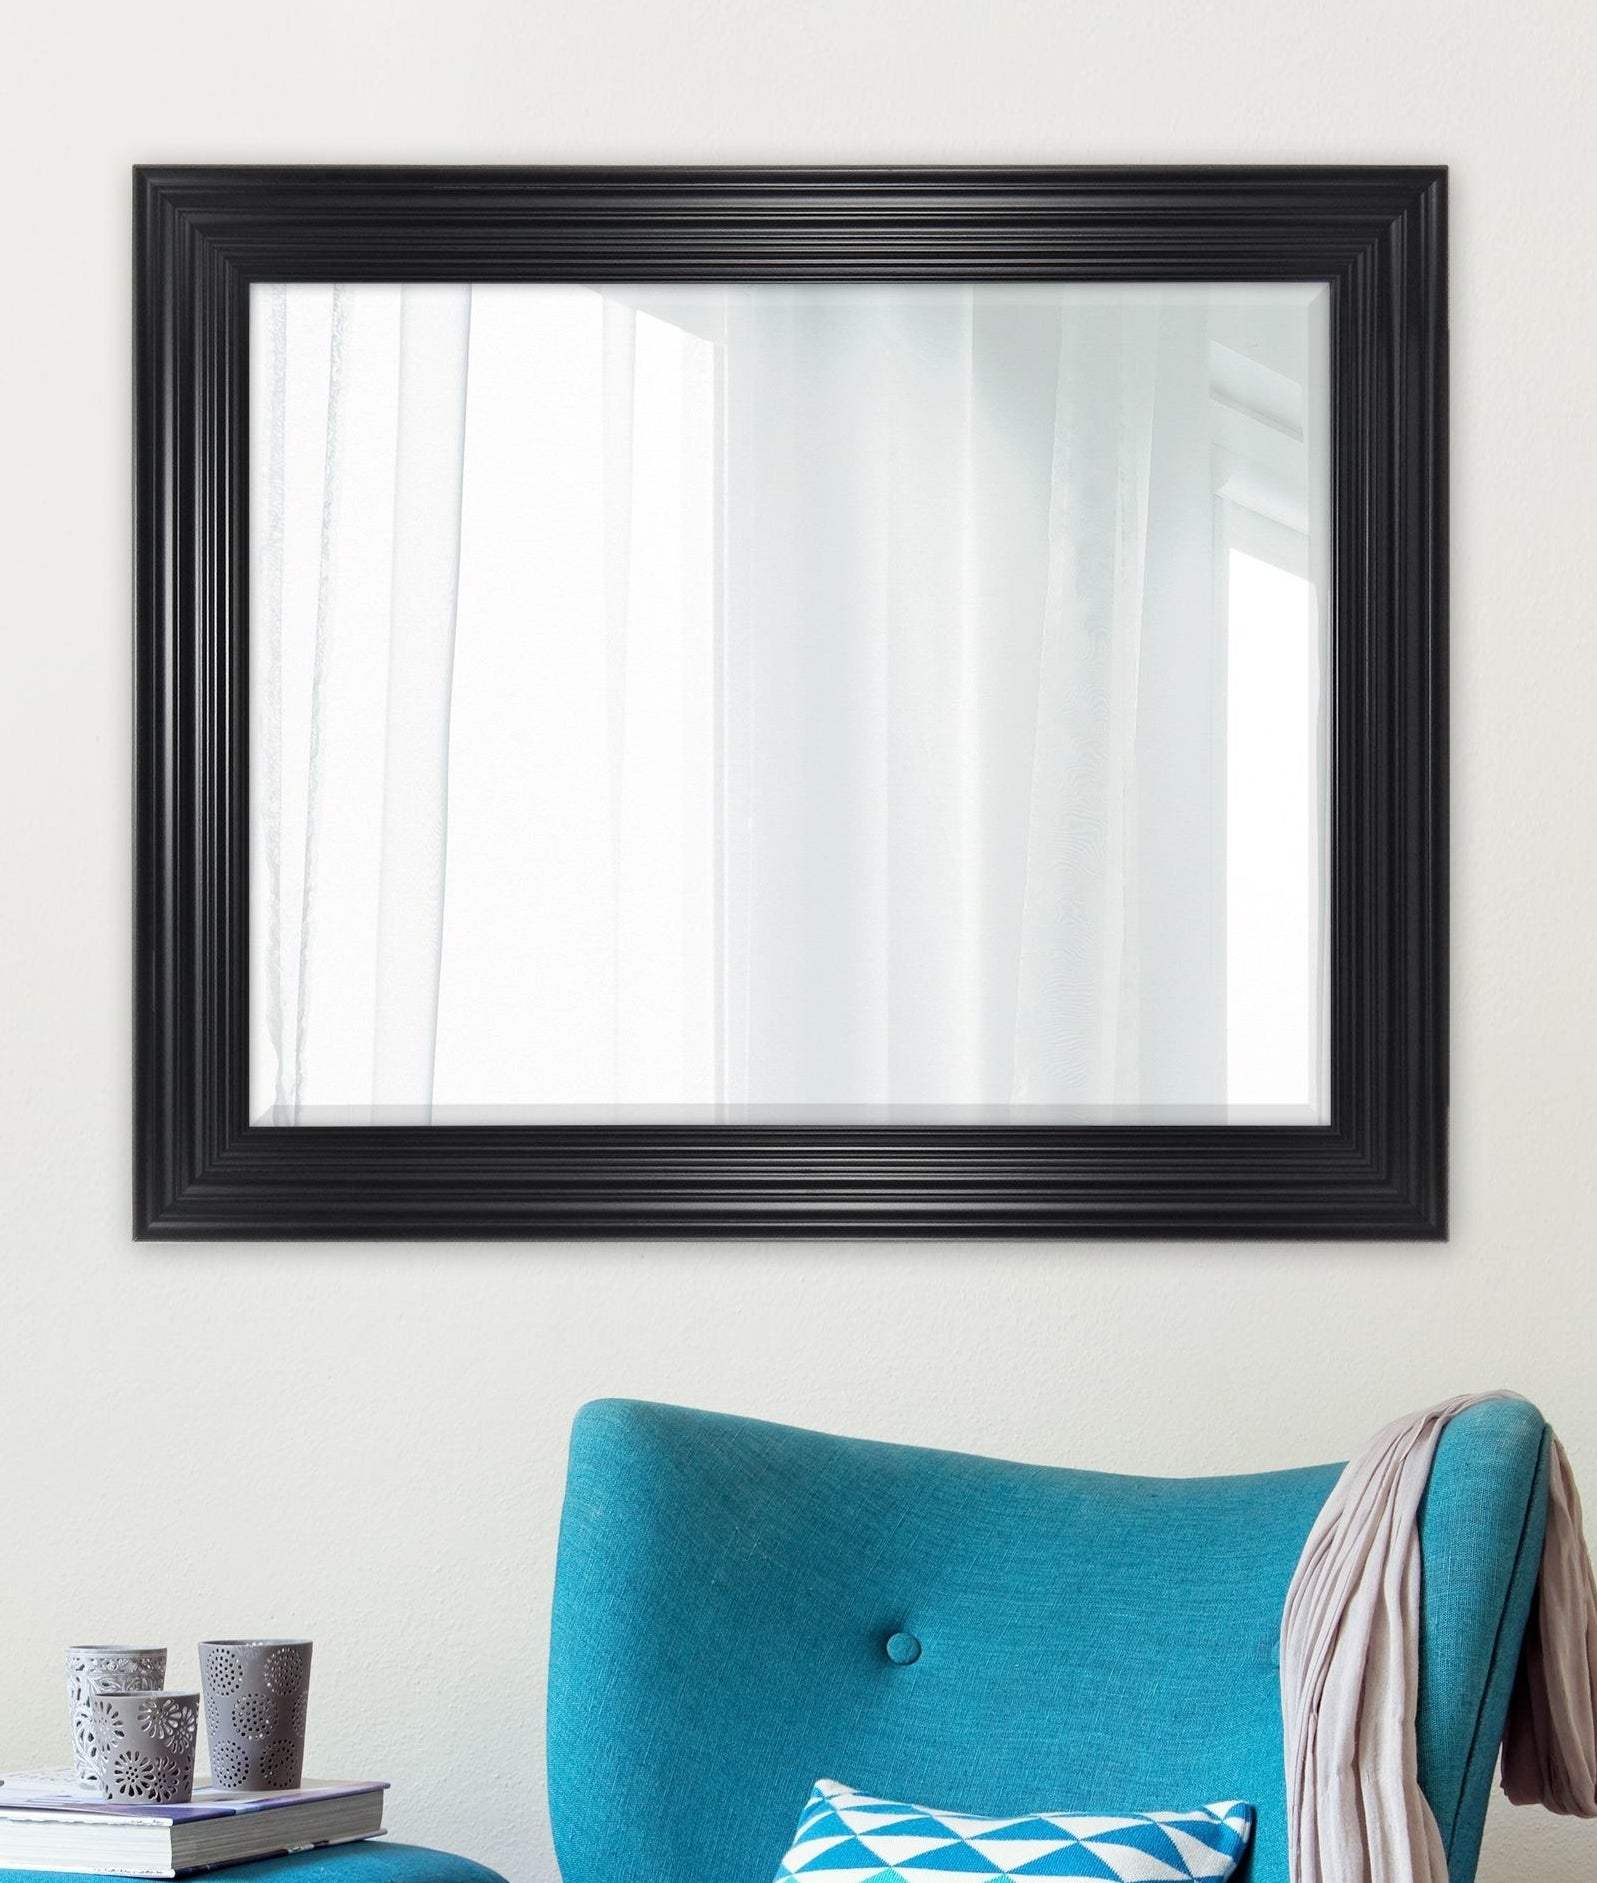 mirror hanging above living room furniture